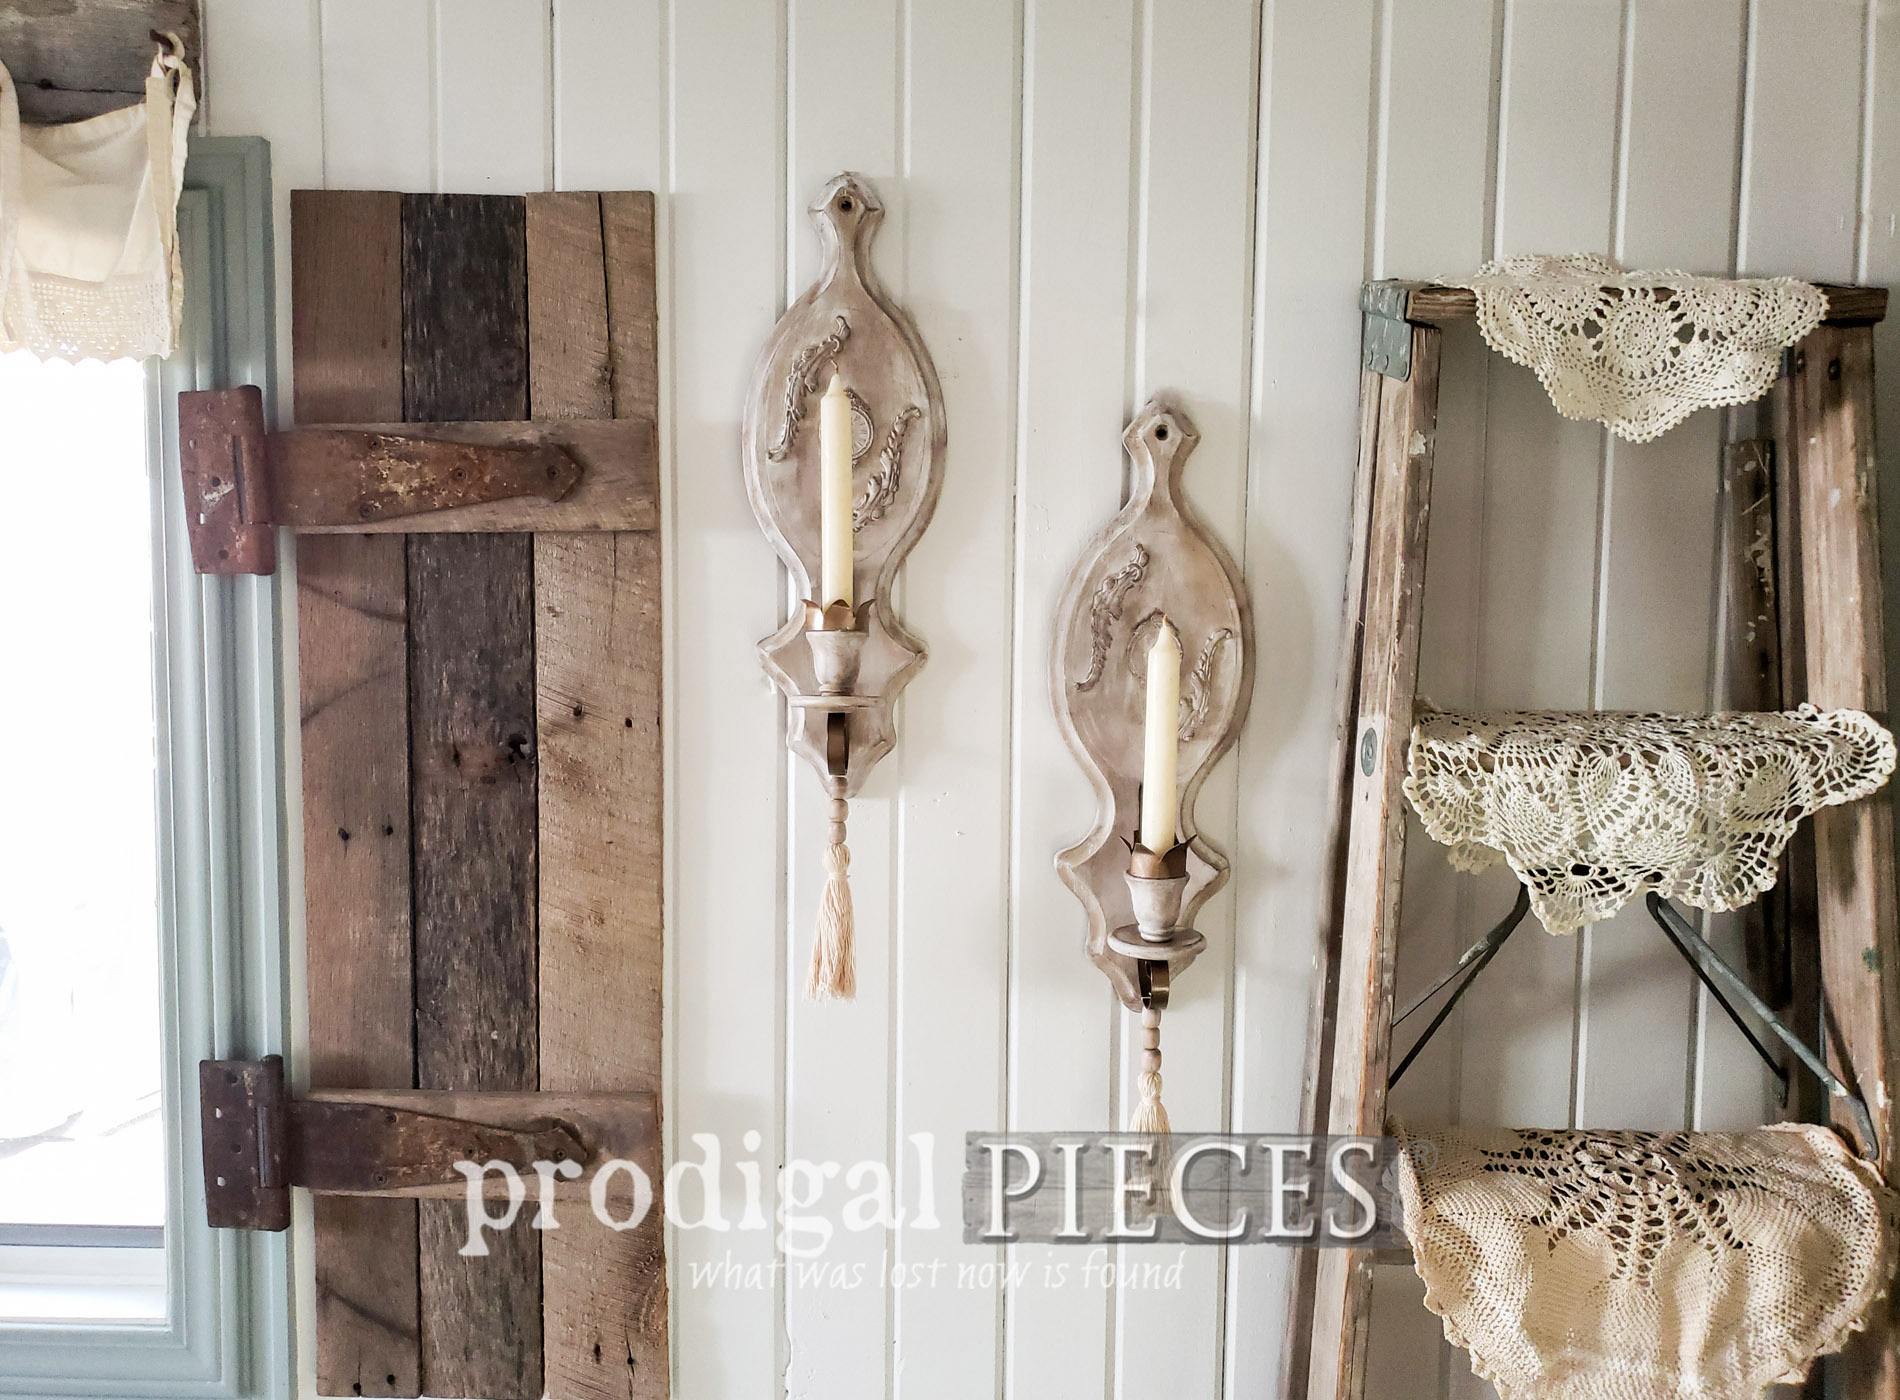 Featured Vintage Candle Sconces Made New by Larissa of Prodigal Pieces | prodigalpieces.com #prodigalpieces #diy #home #homedecor #farmhouse